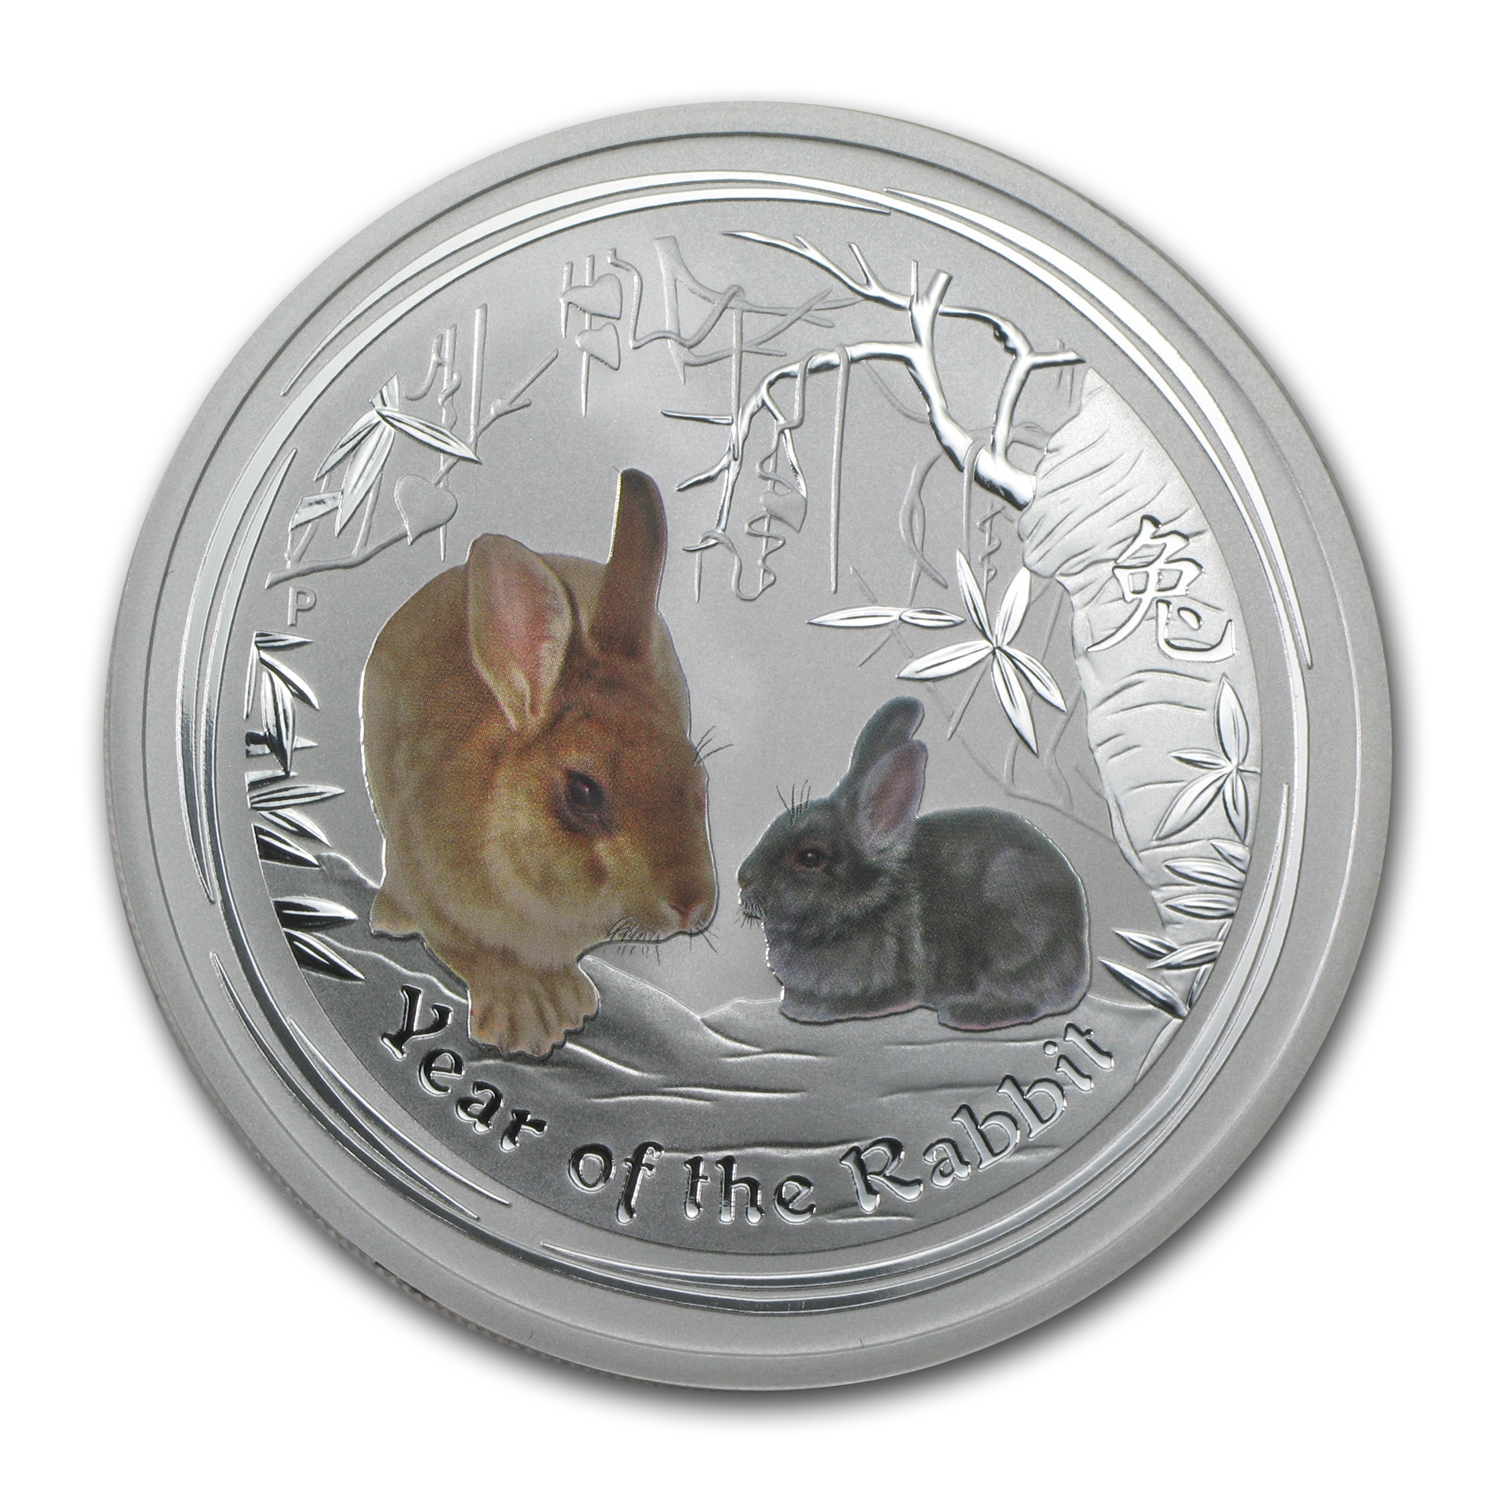 2011 2 oz Silver Australian Rabbit BU (ANDA, Colorized)